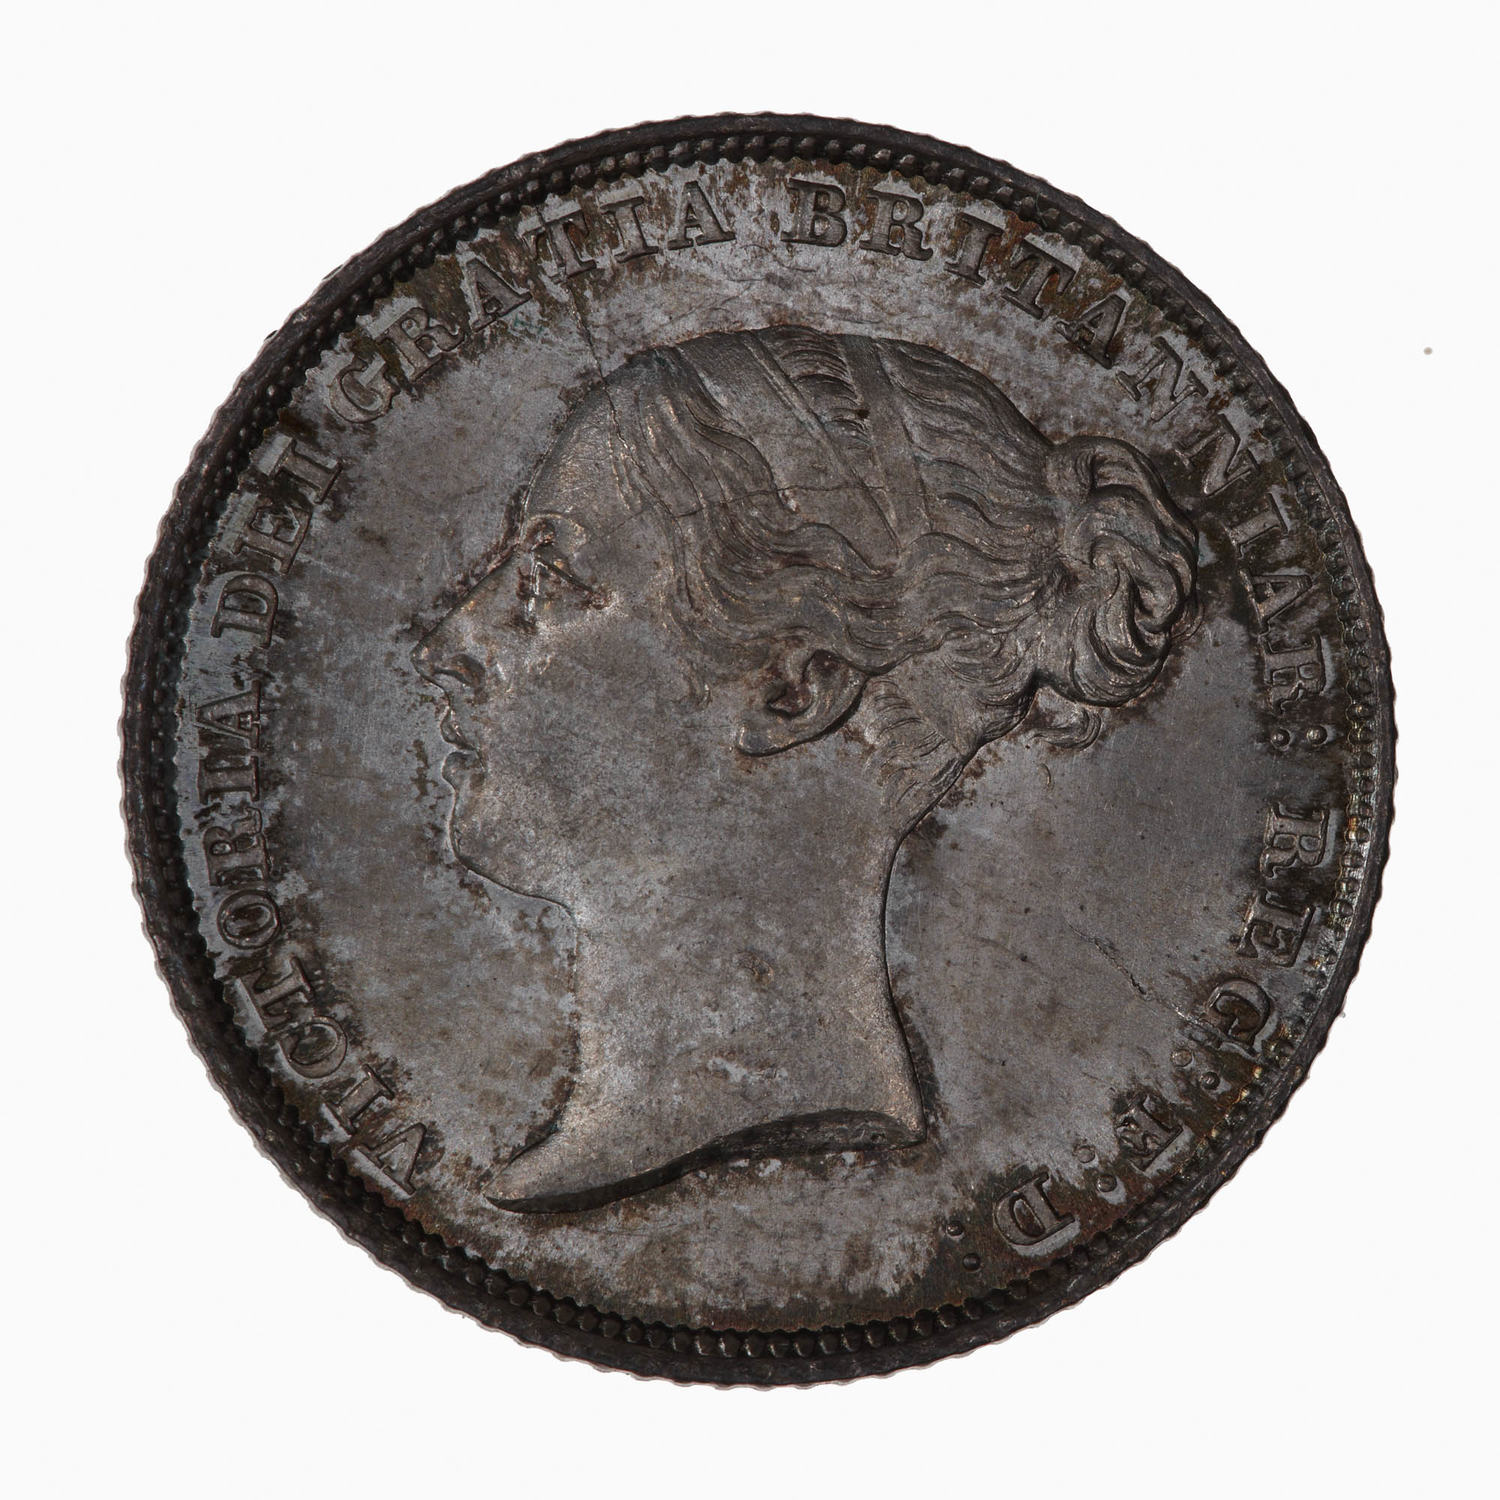 Sixpence 1845: Photo Coin - Sixpence, Queen Victoria, Great Britain, 1845